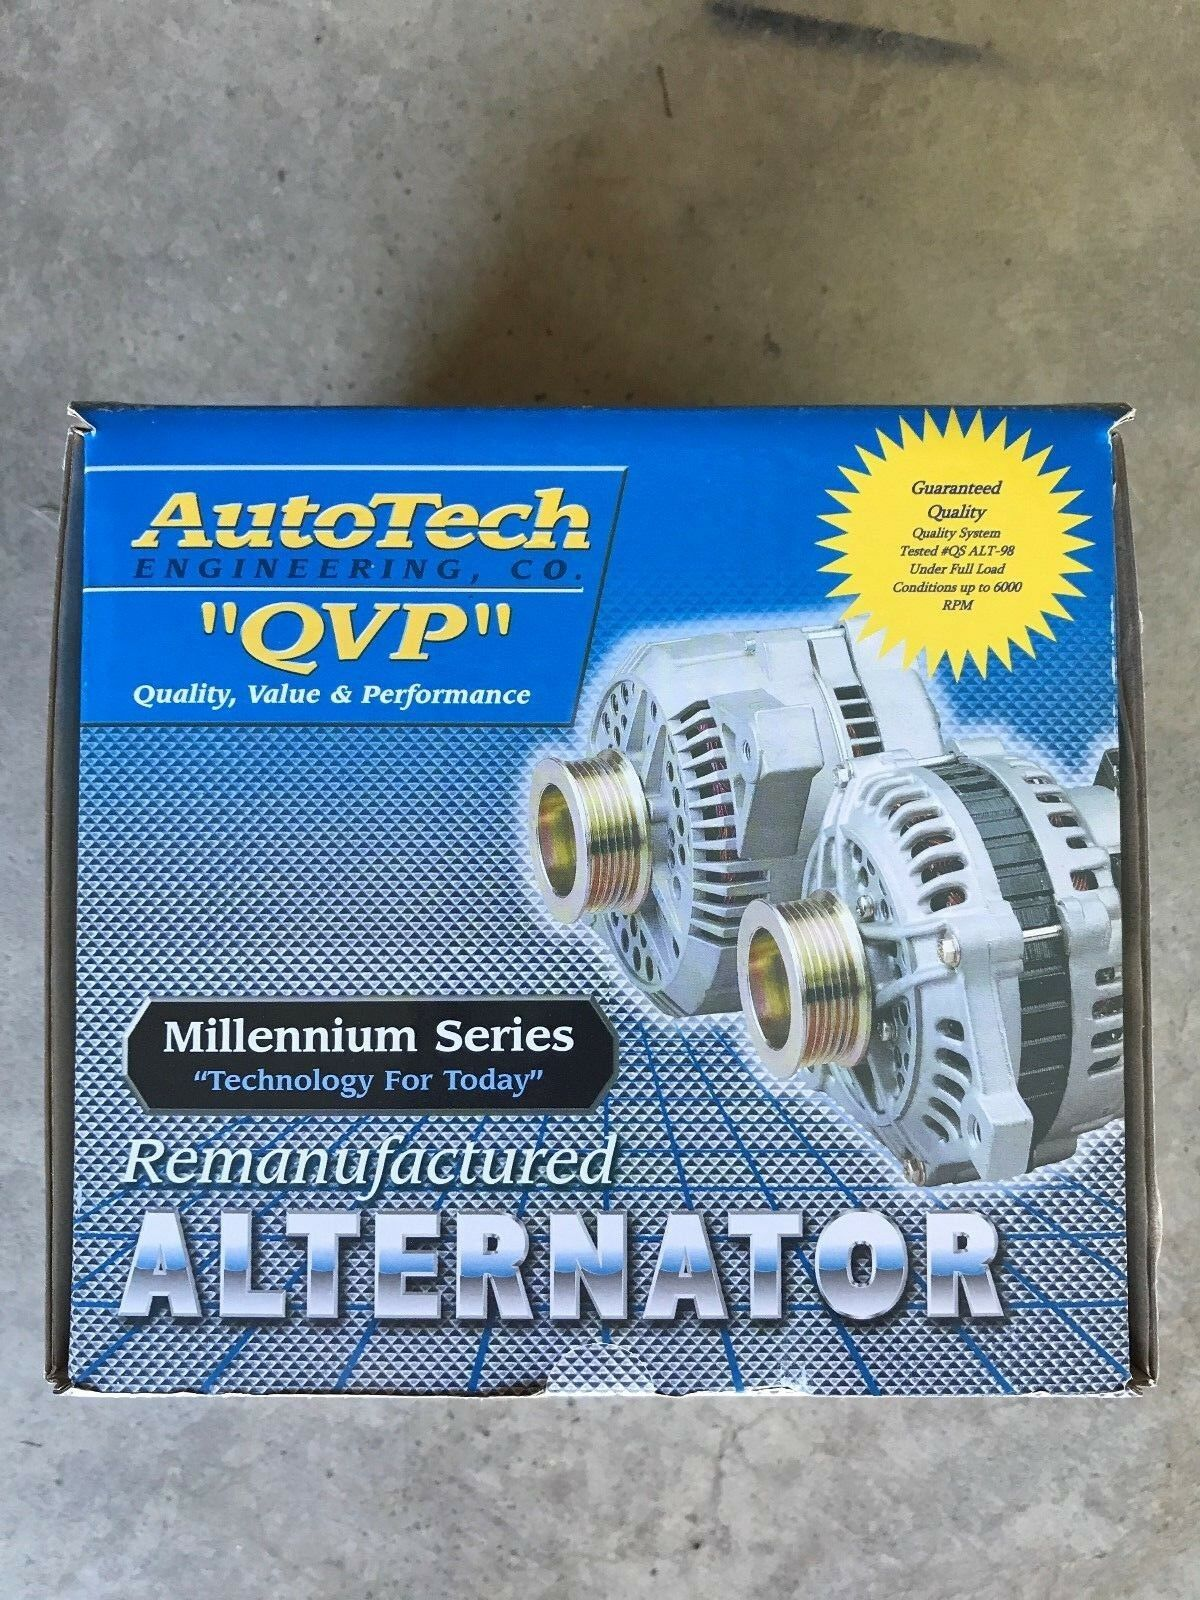 Autotech Re-manufactured Alternator Millennium Series 7861-7 4